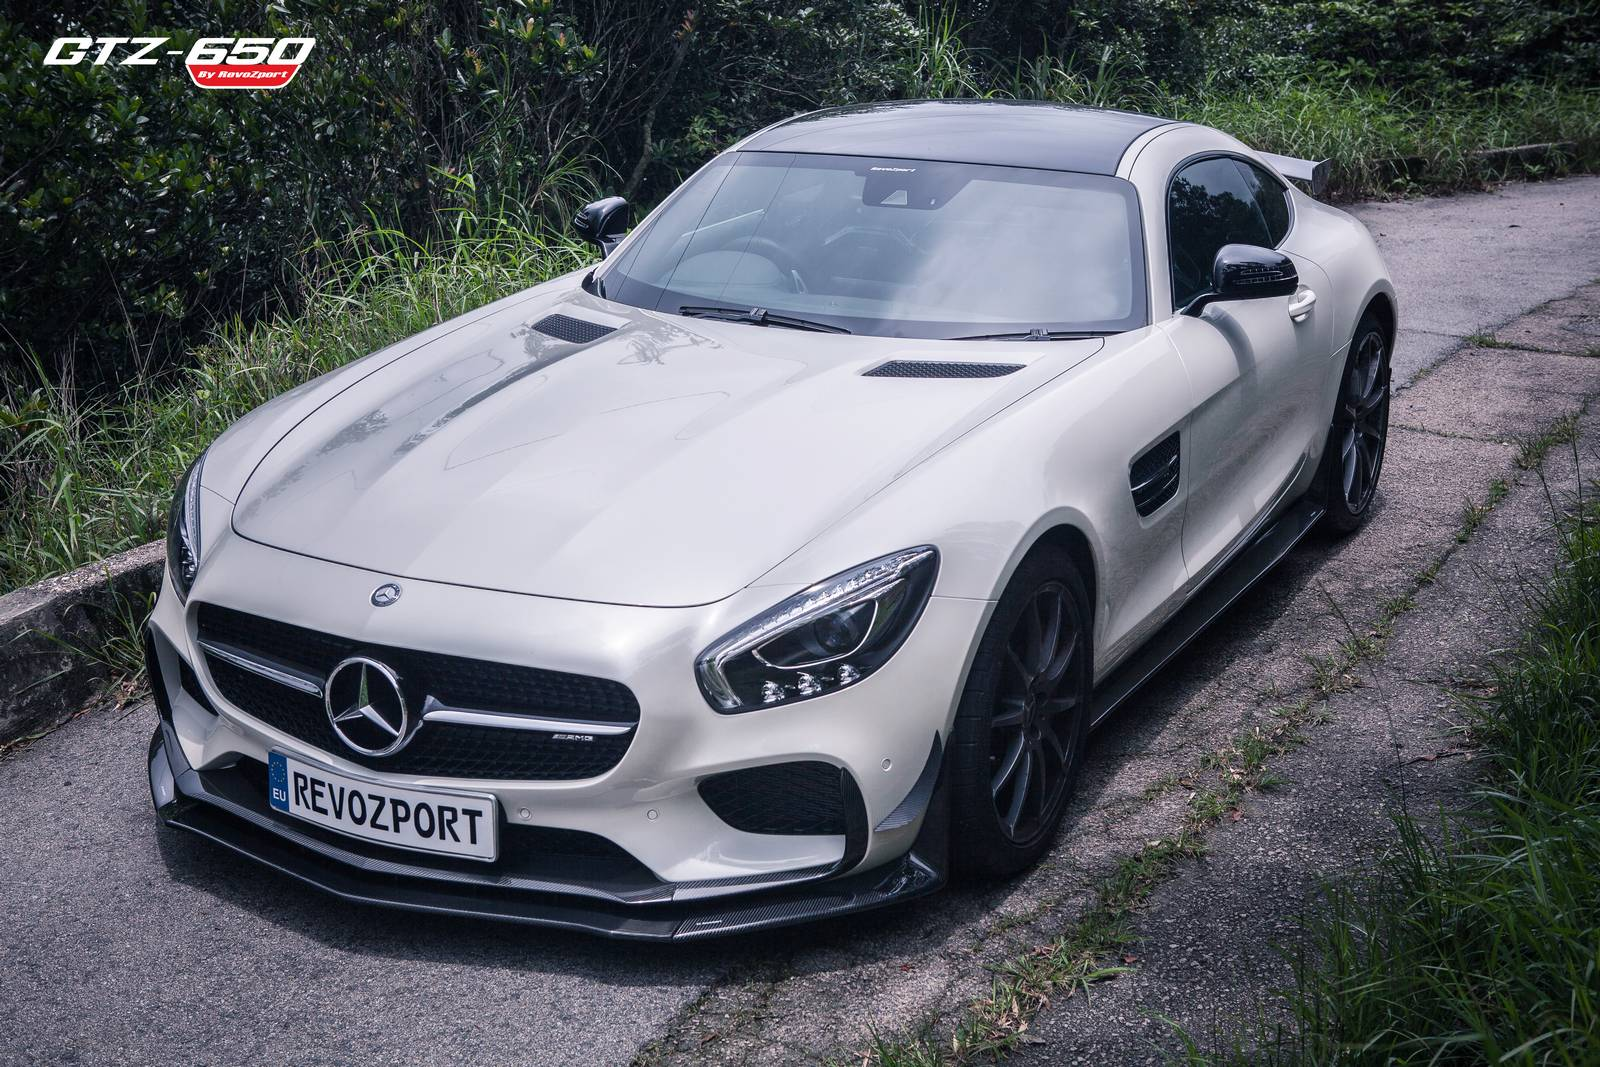 Official revozport gtz 650 package for mercedes amg gt s for Mercedes benz 650